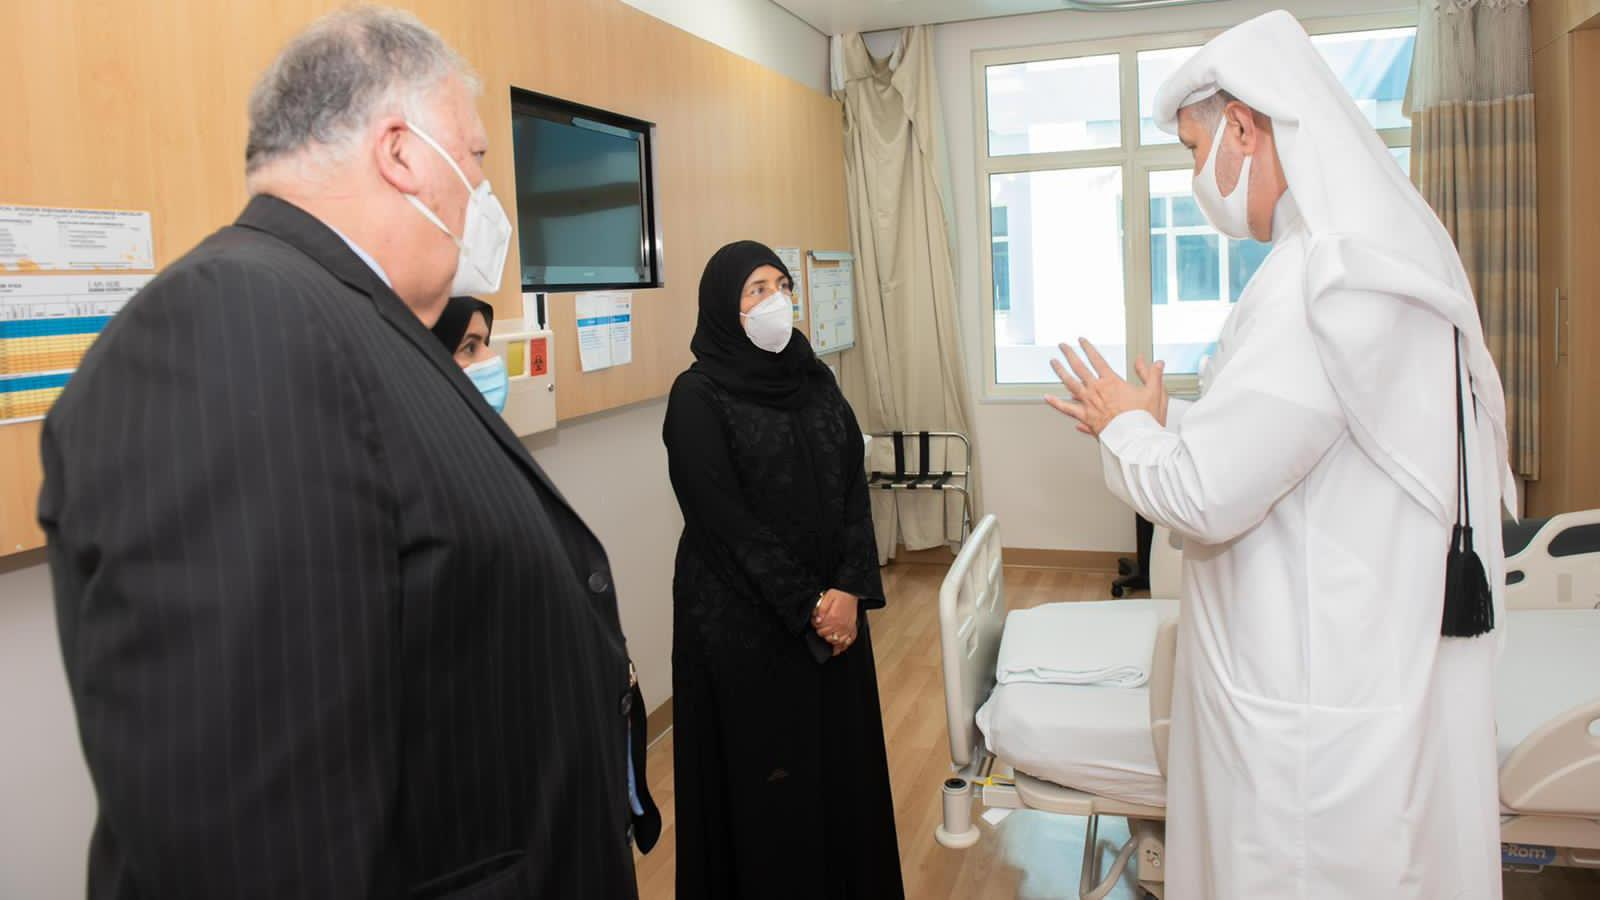 Health Minister visits Al Wakra Hospital following its designation as a COVID-19 facility